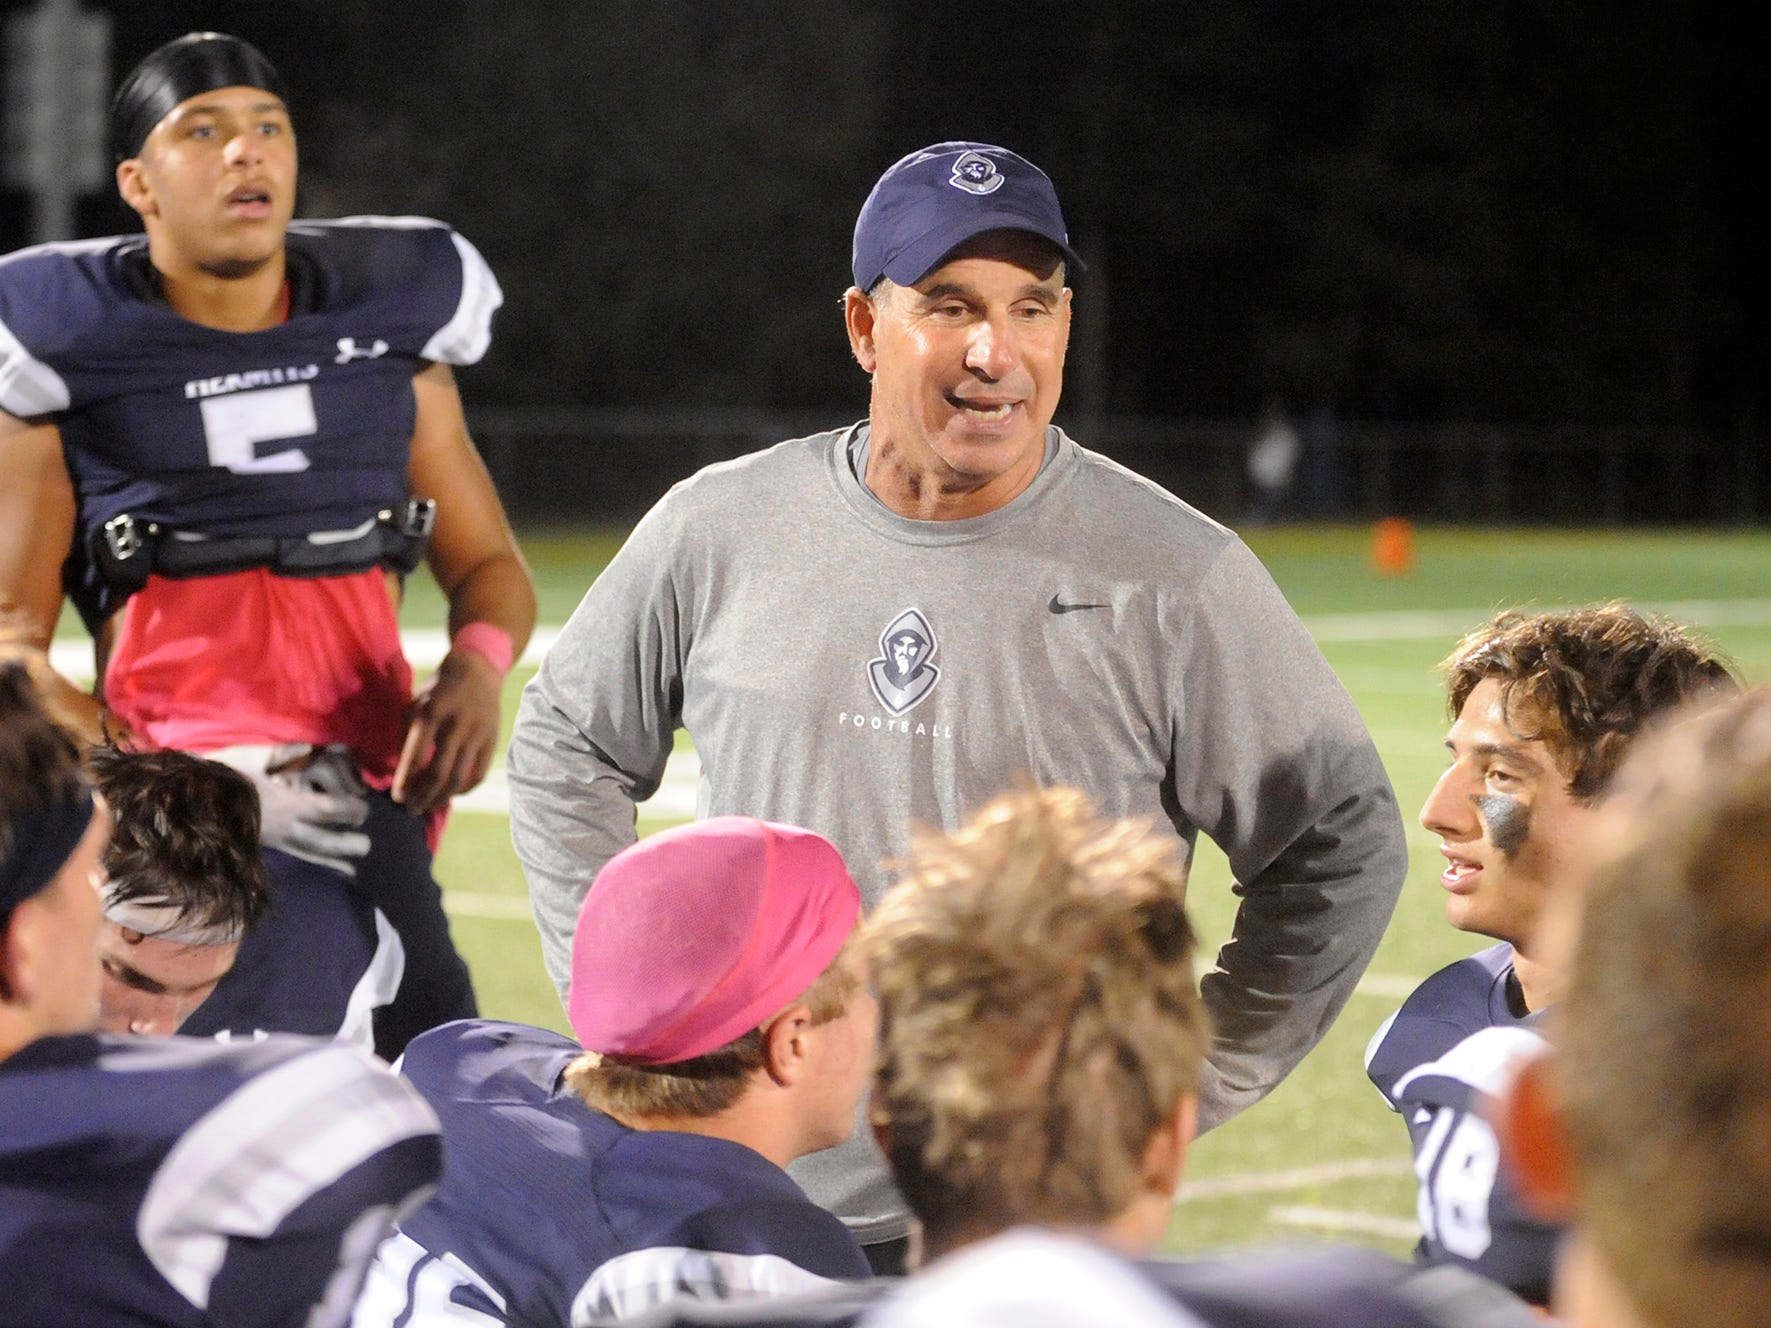 Coach Pete Lancetta speaks to the Hermits after a big win over the Spartans. St. Augustine topped visiting Holy Spirit 27-14 in Richland on Friday, October 12, 2018.